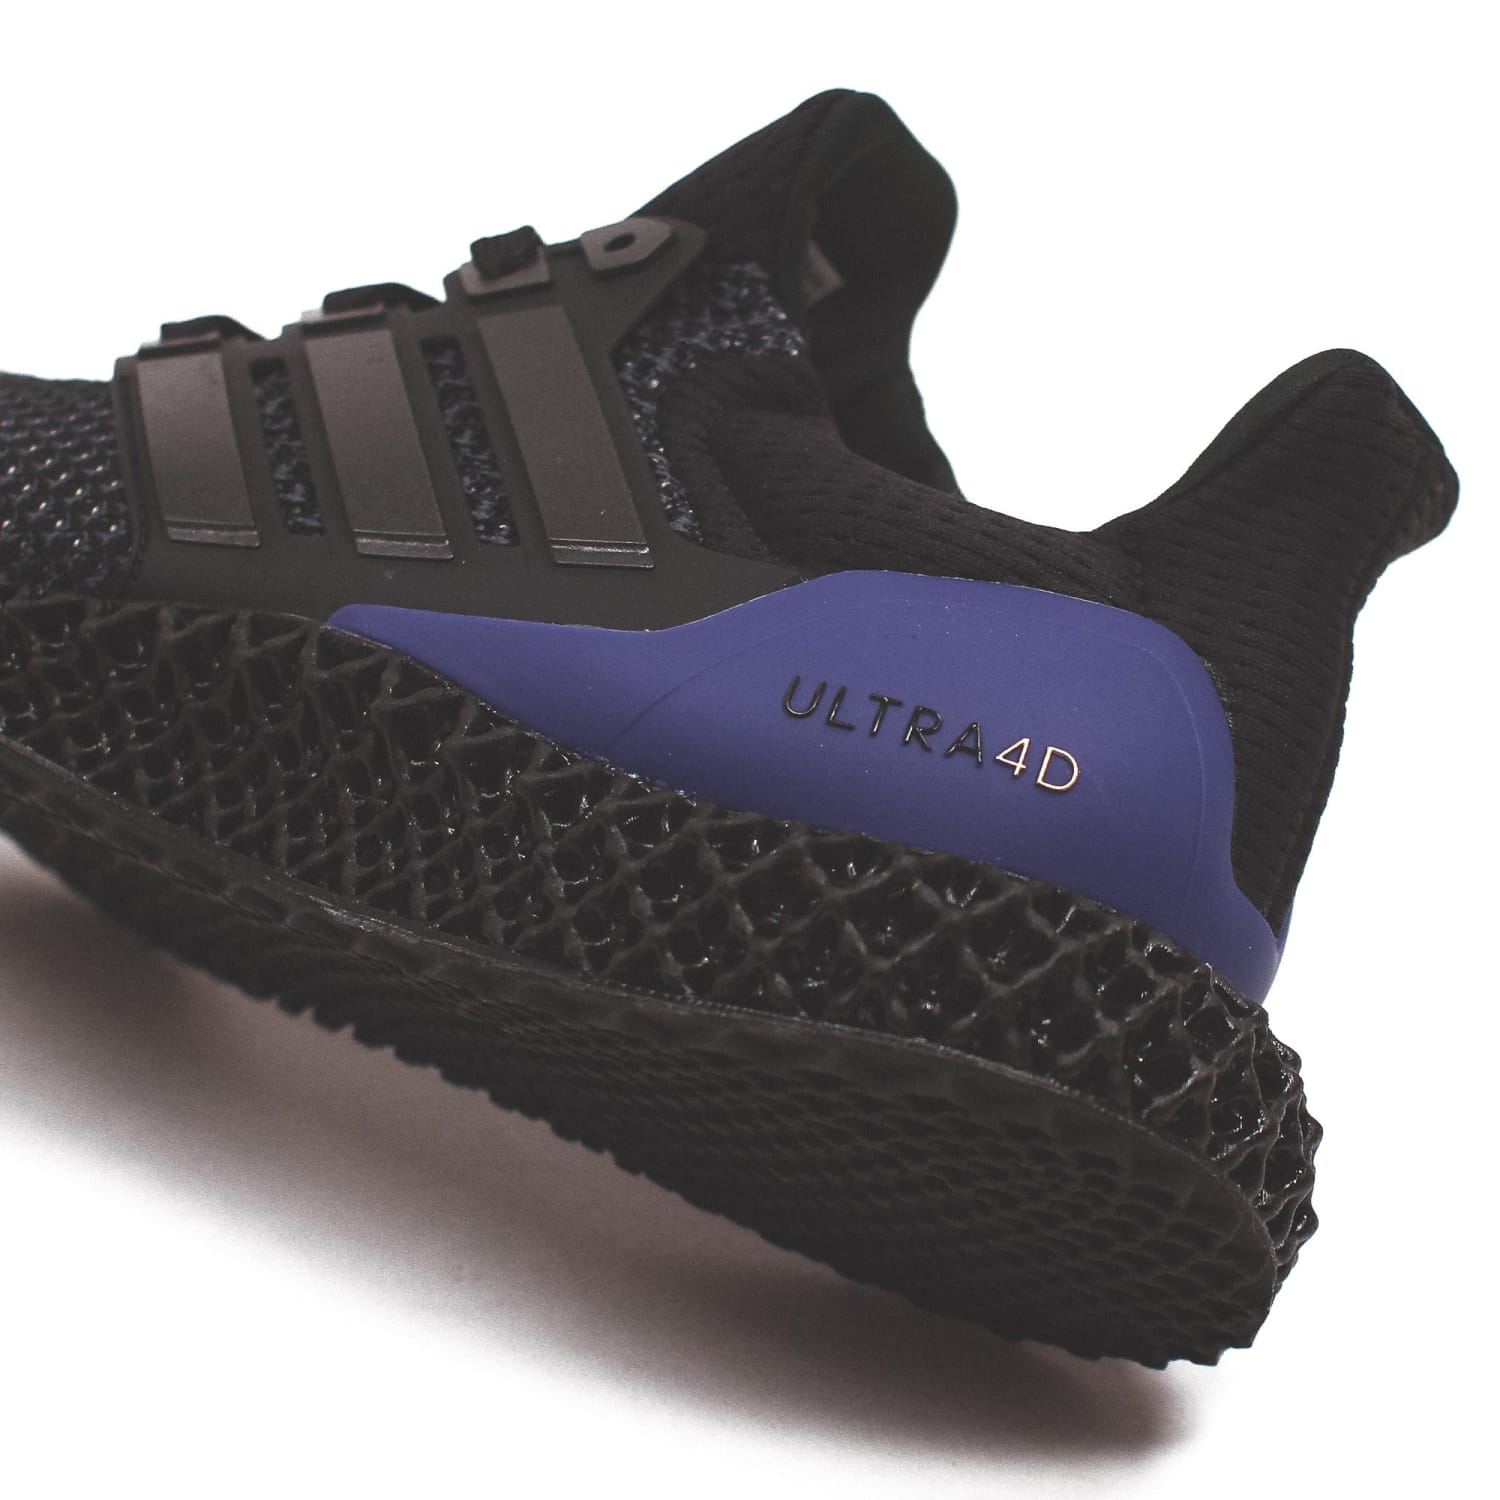 The Future of Running: The Adidas Ultra4D - FW7089